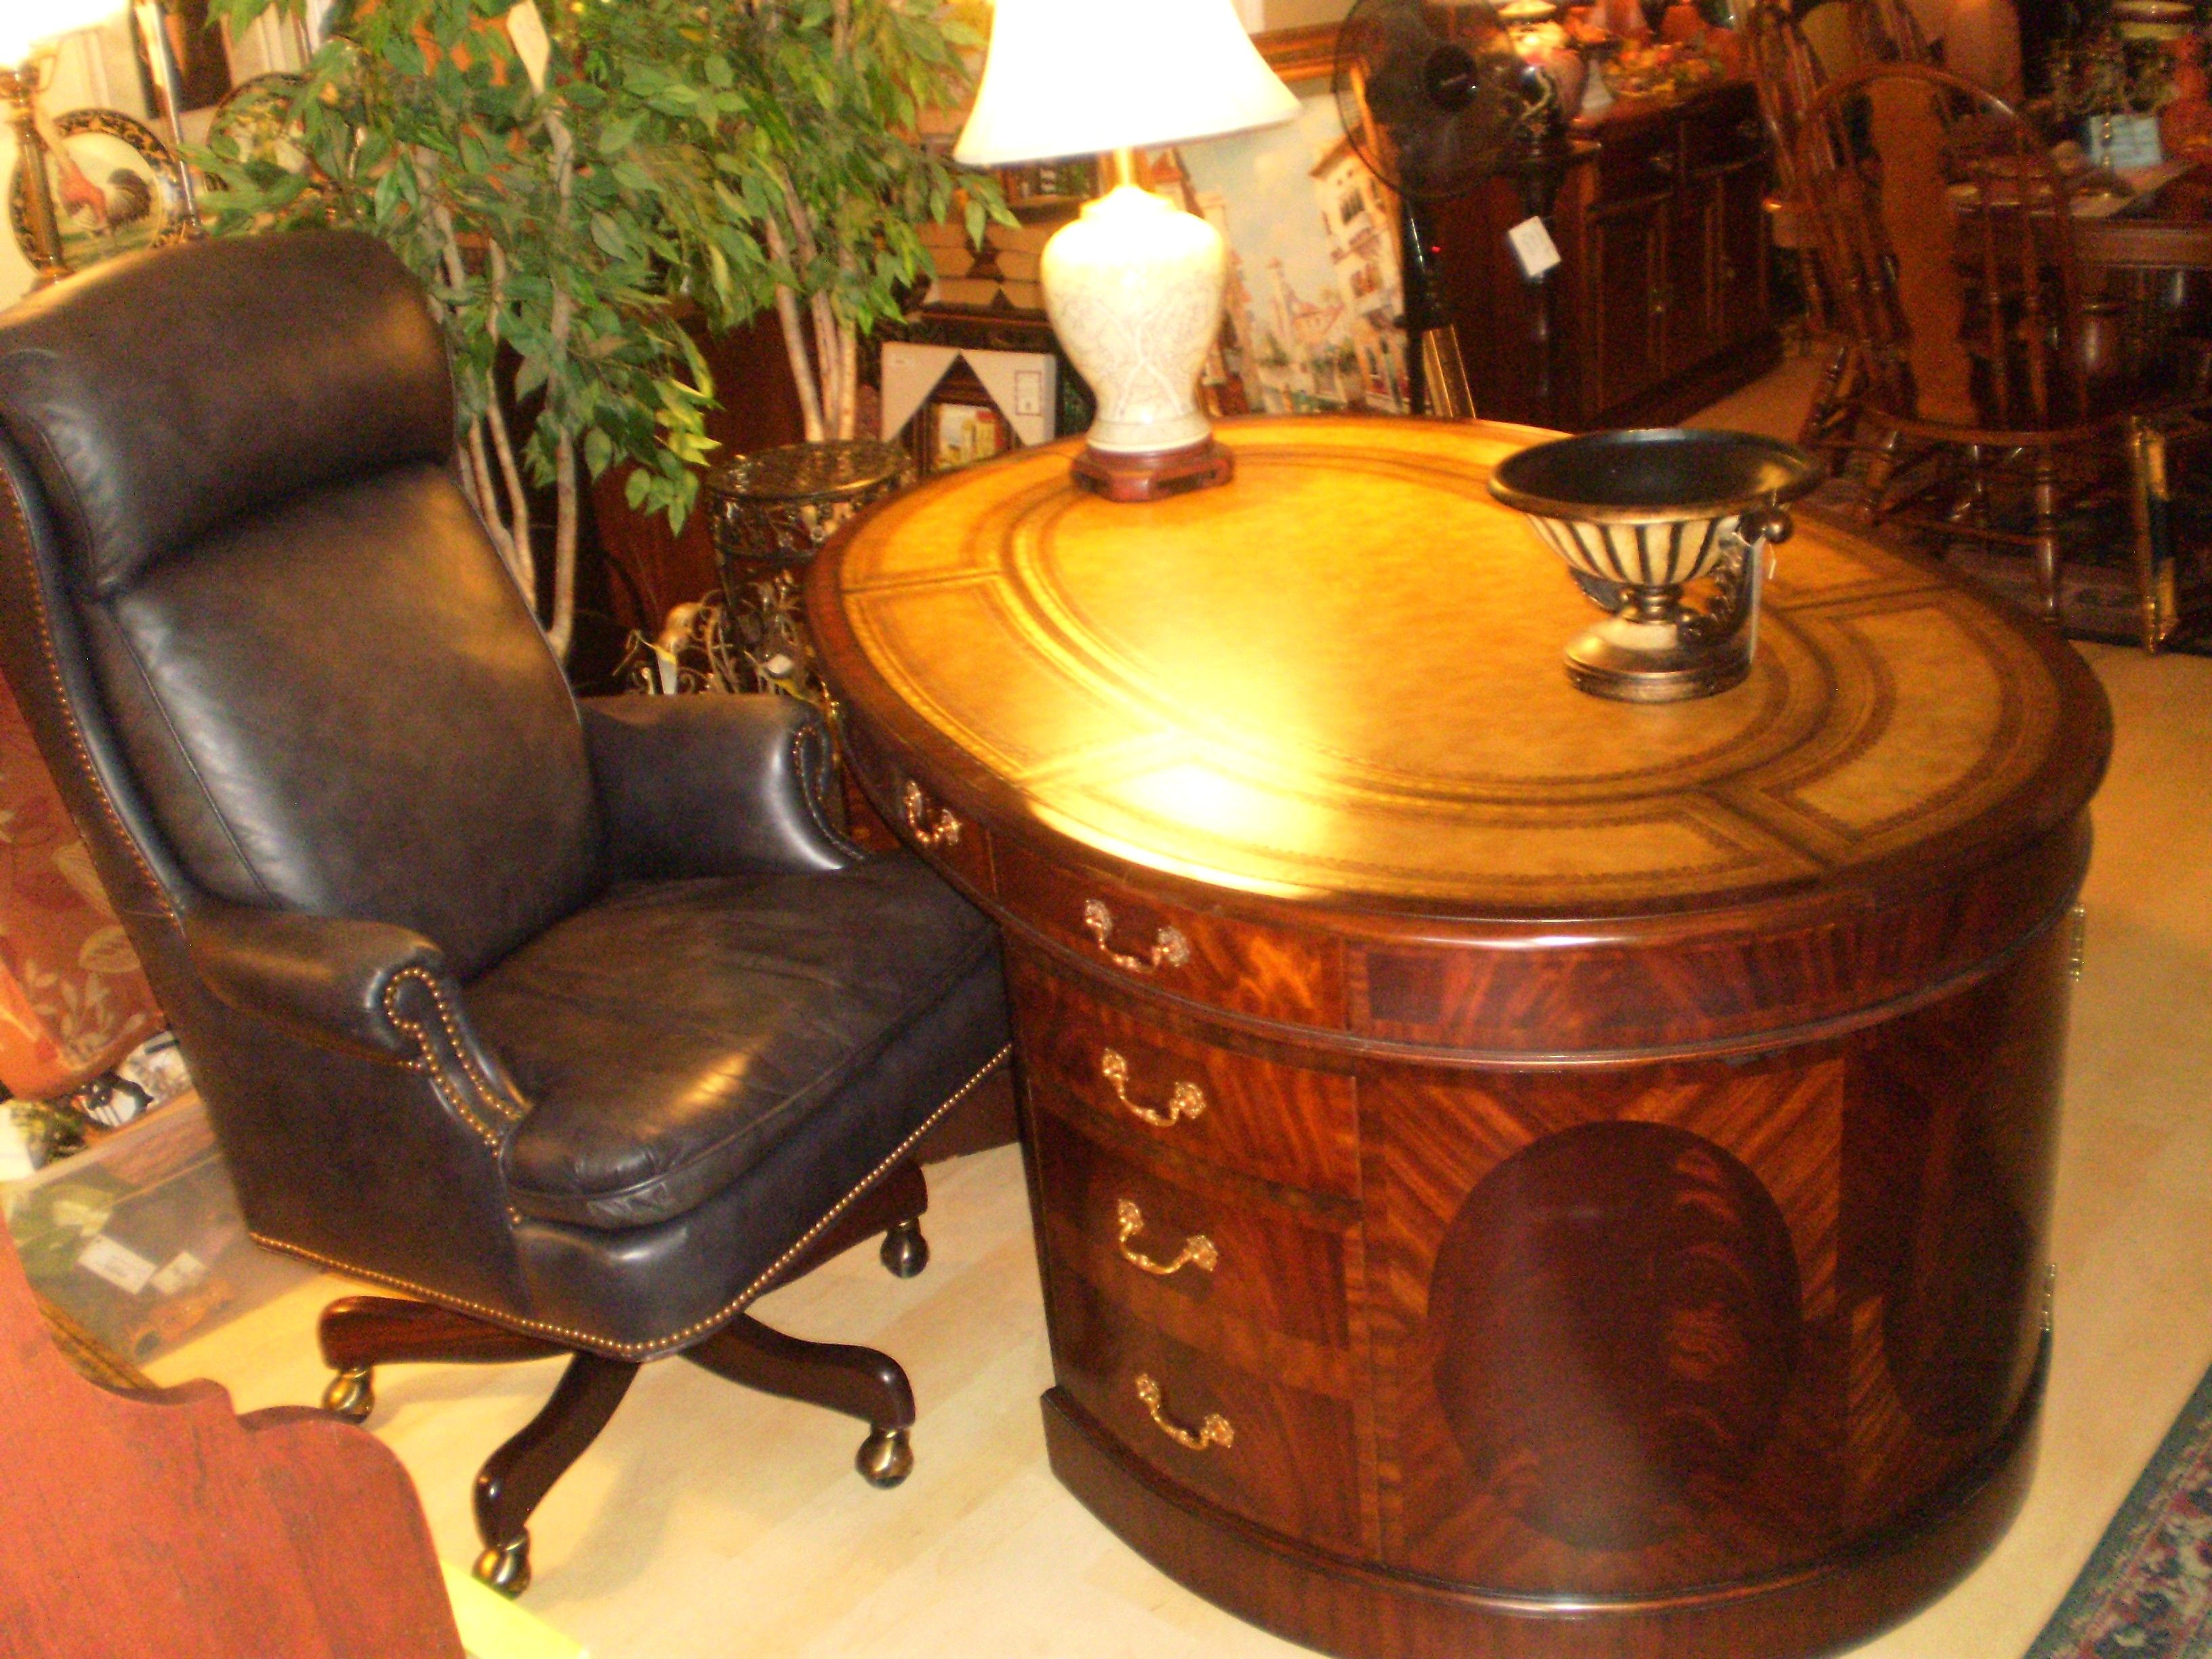 Maitland smith leather inlaid top oval partners desk priced 5500 maitland smith leather inlaid top oval partners desk priced 5500 now 2999 70w gumiabroncs Choice Image